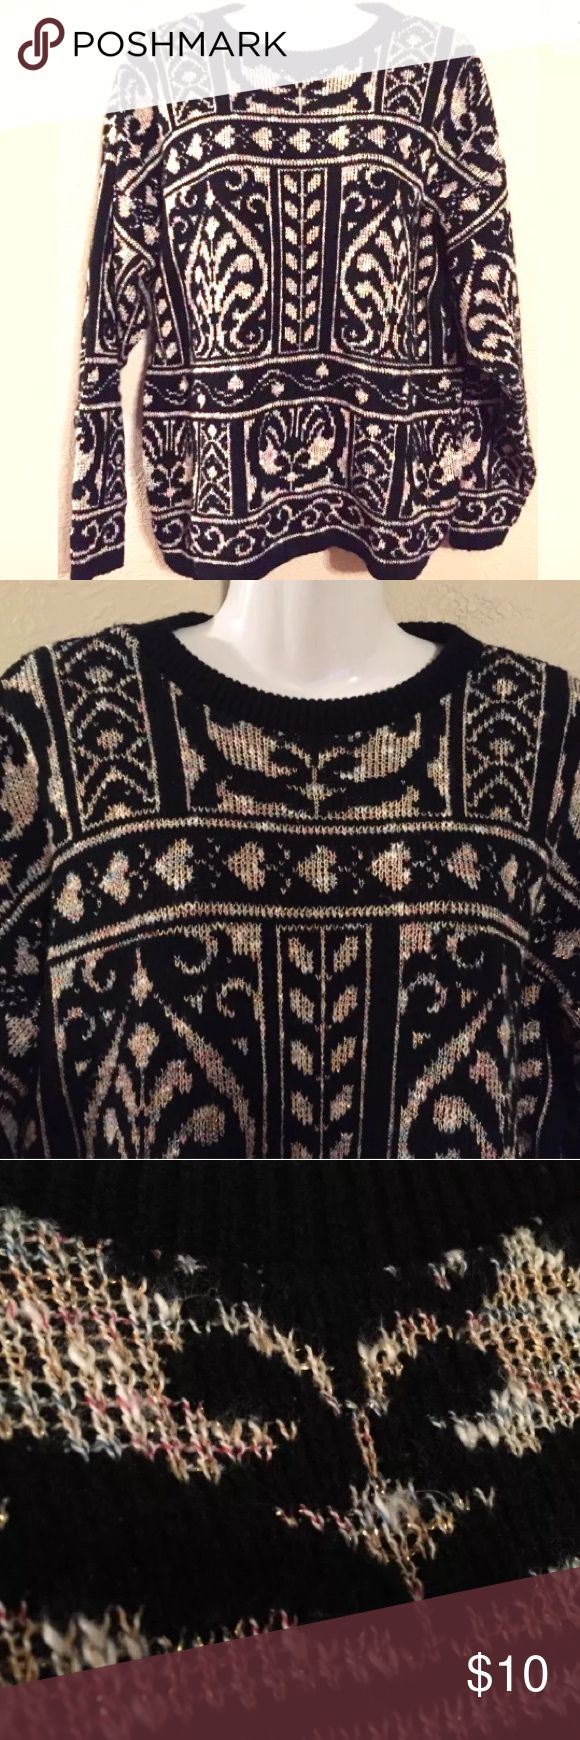 """Vintage 1980s sweater Vintage Jessica Stevens 1980s sweater; Knit Heart pattern; Shimmery black and beige gold tone; measures approx 21"""" pit to pit, 24"""" long; made in USA; Acrylic and polyester; gently used condition, no stains or holes; super cute!!! Jessica Stevens Sweaters Crew & Scoop Necks"""